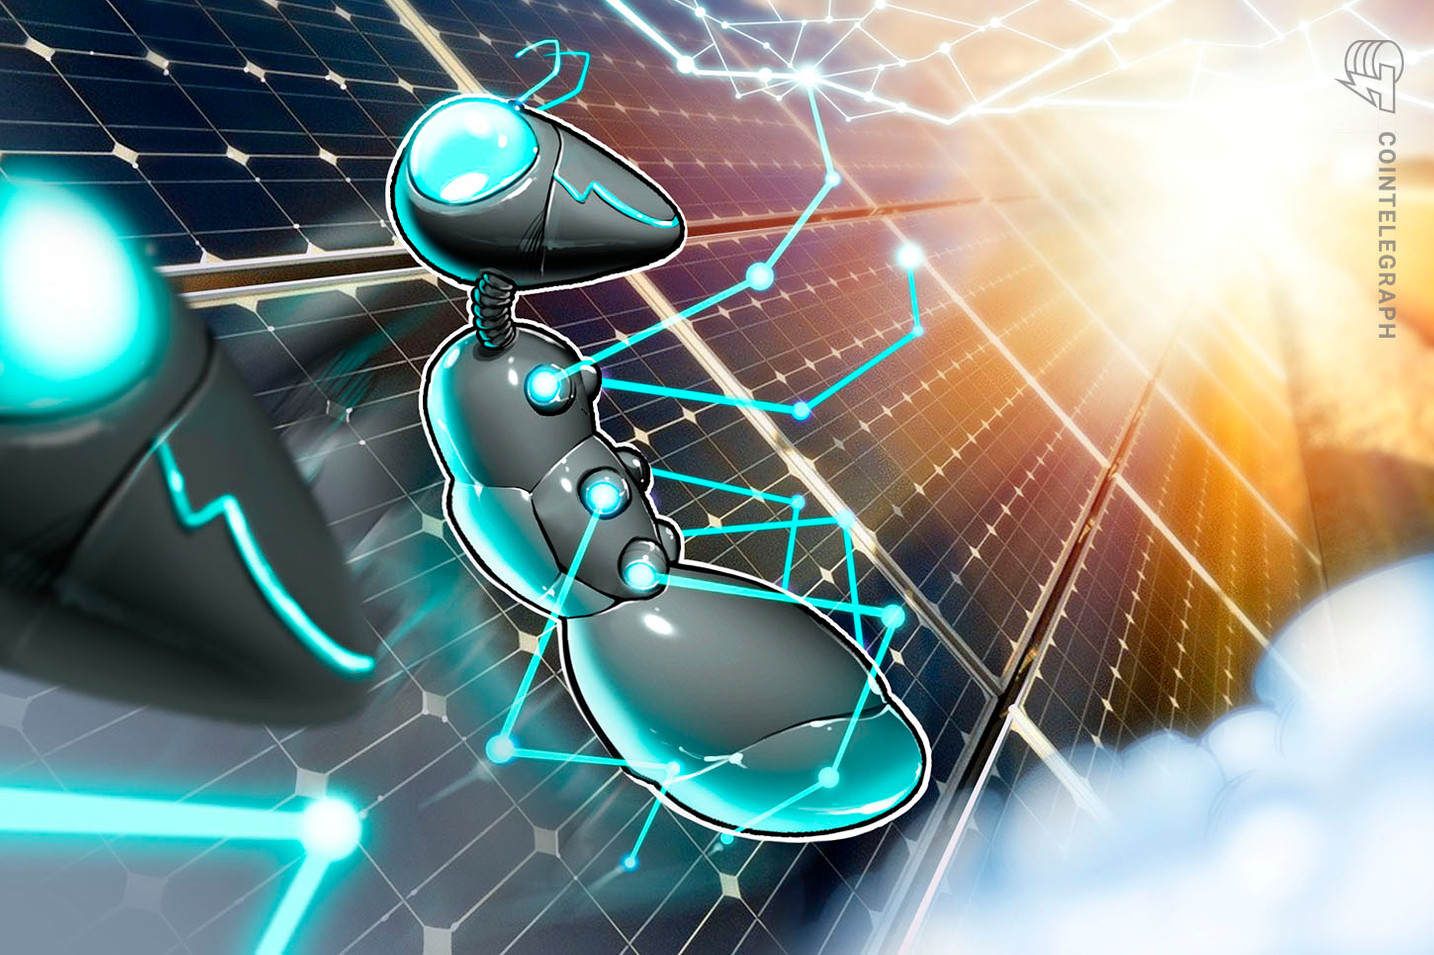 Top South Korean Utility to Co-Develop Blockchain System for Renewable Energy Certificates